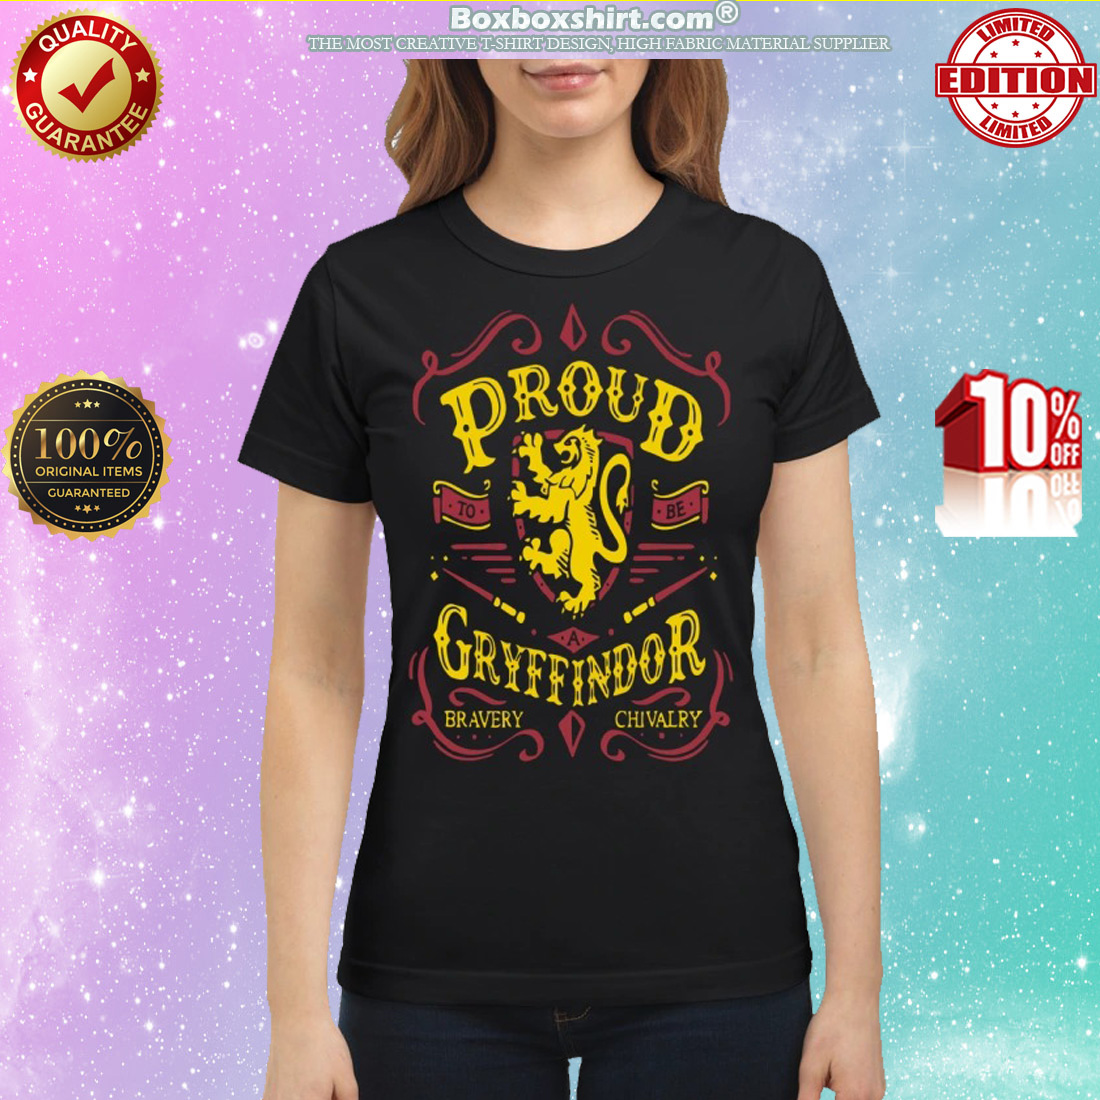 Proud to be a Gryffindor bravery chivalry classic shirt